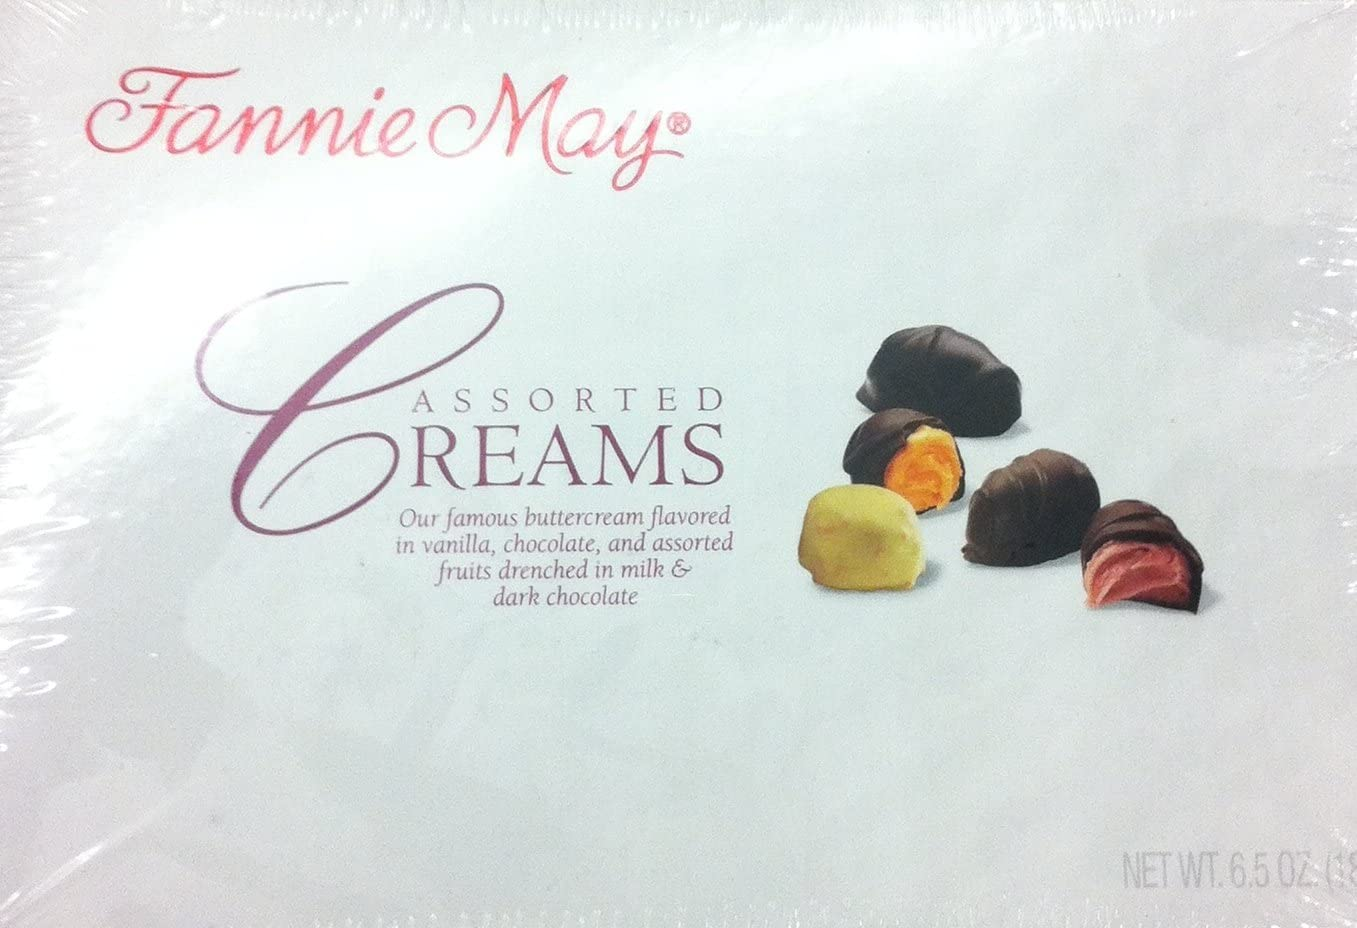 Fannie May Assorted Creams Oz. Box Max 41% OFF Sale Candy----6.5 Chocolate